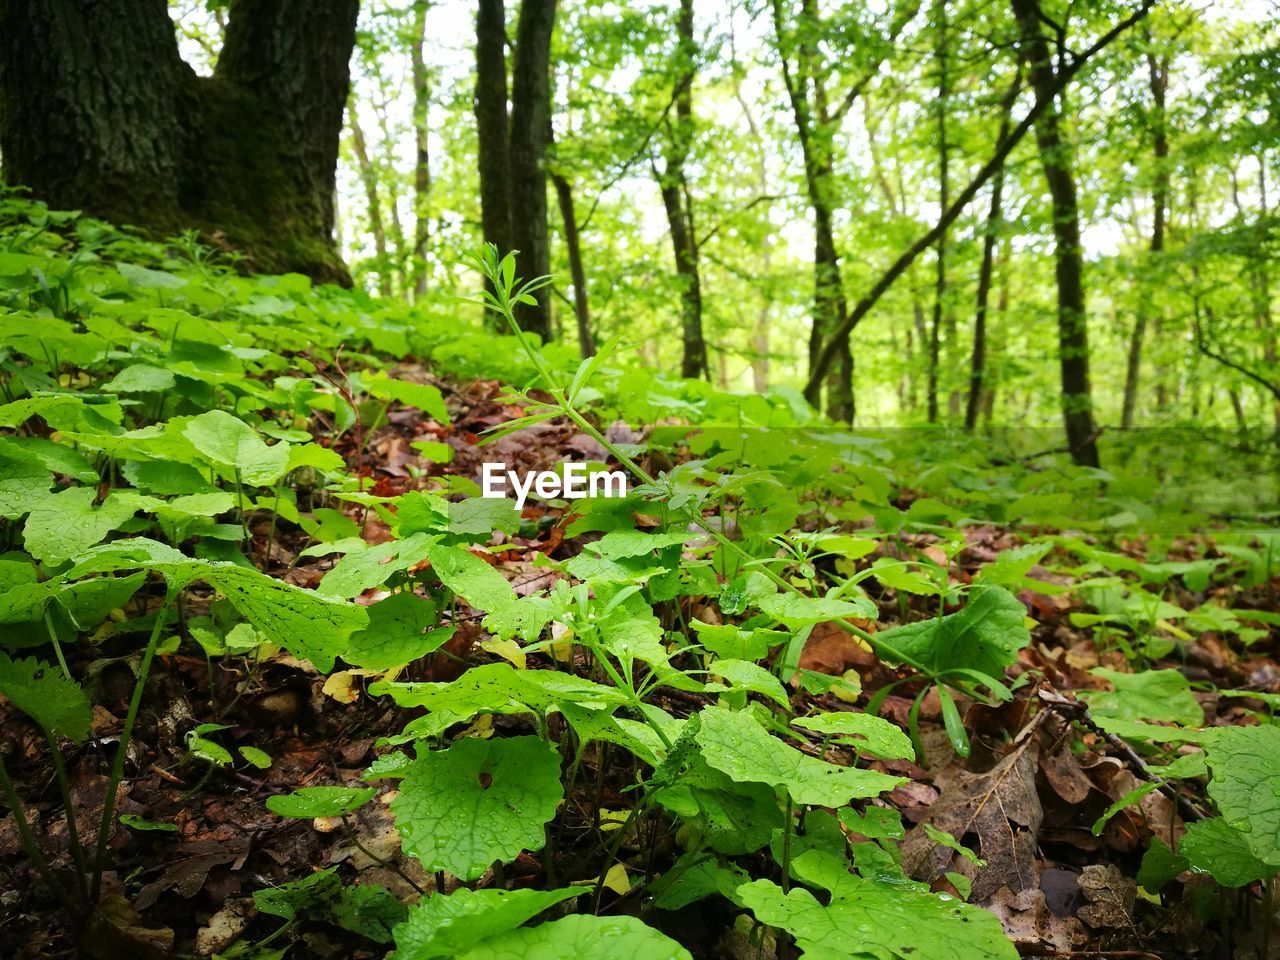 land, forest, plant, growth, tree, plant part, green color, nature, leaf, trunk, tree trunk, beauty in nature, tranquility, day, woodland, no people, focus on foreground, environment, outdoors, tranquil scene, leaves